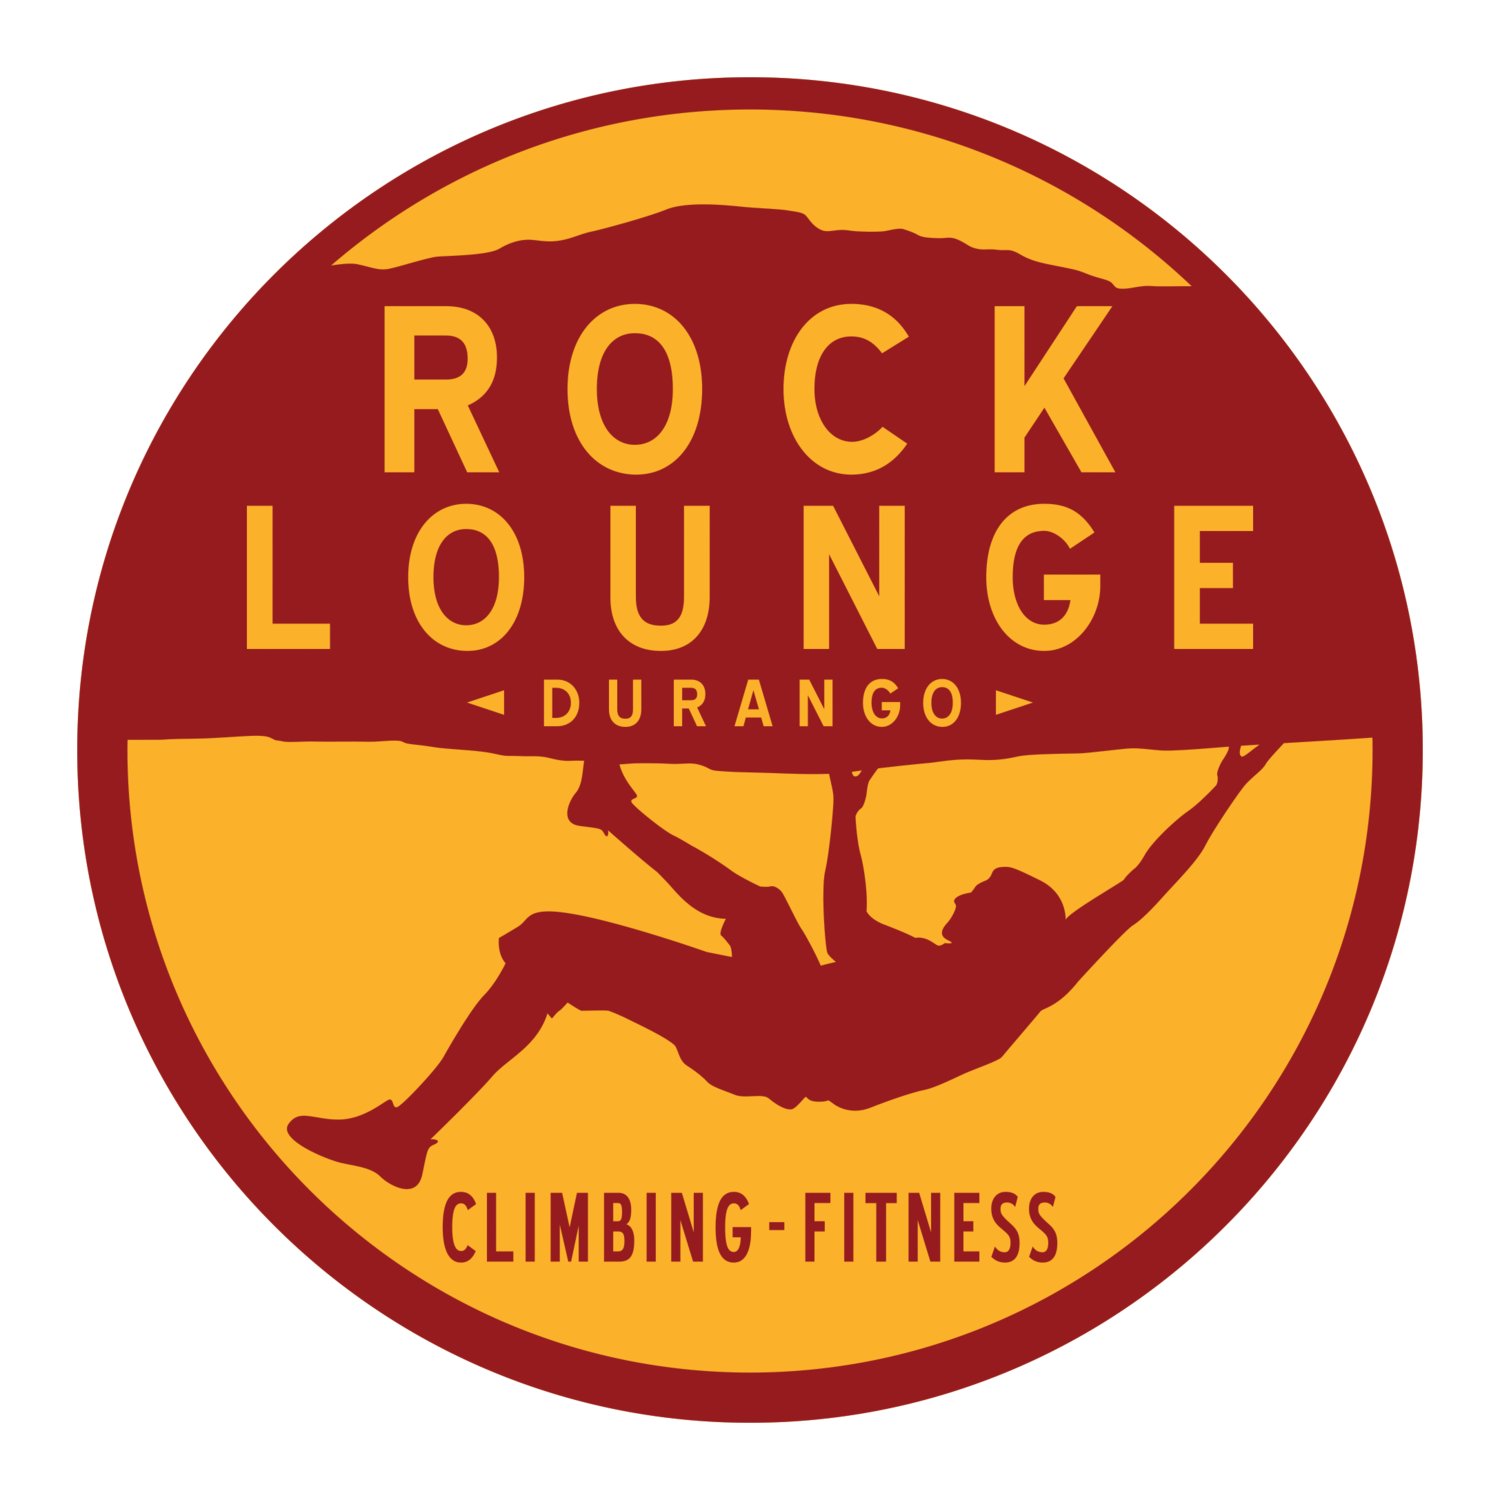 The Rock Lounge